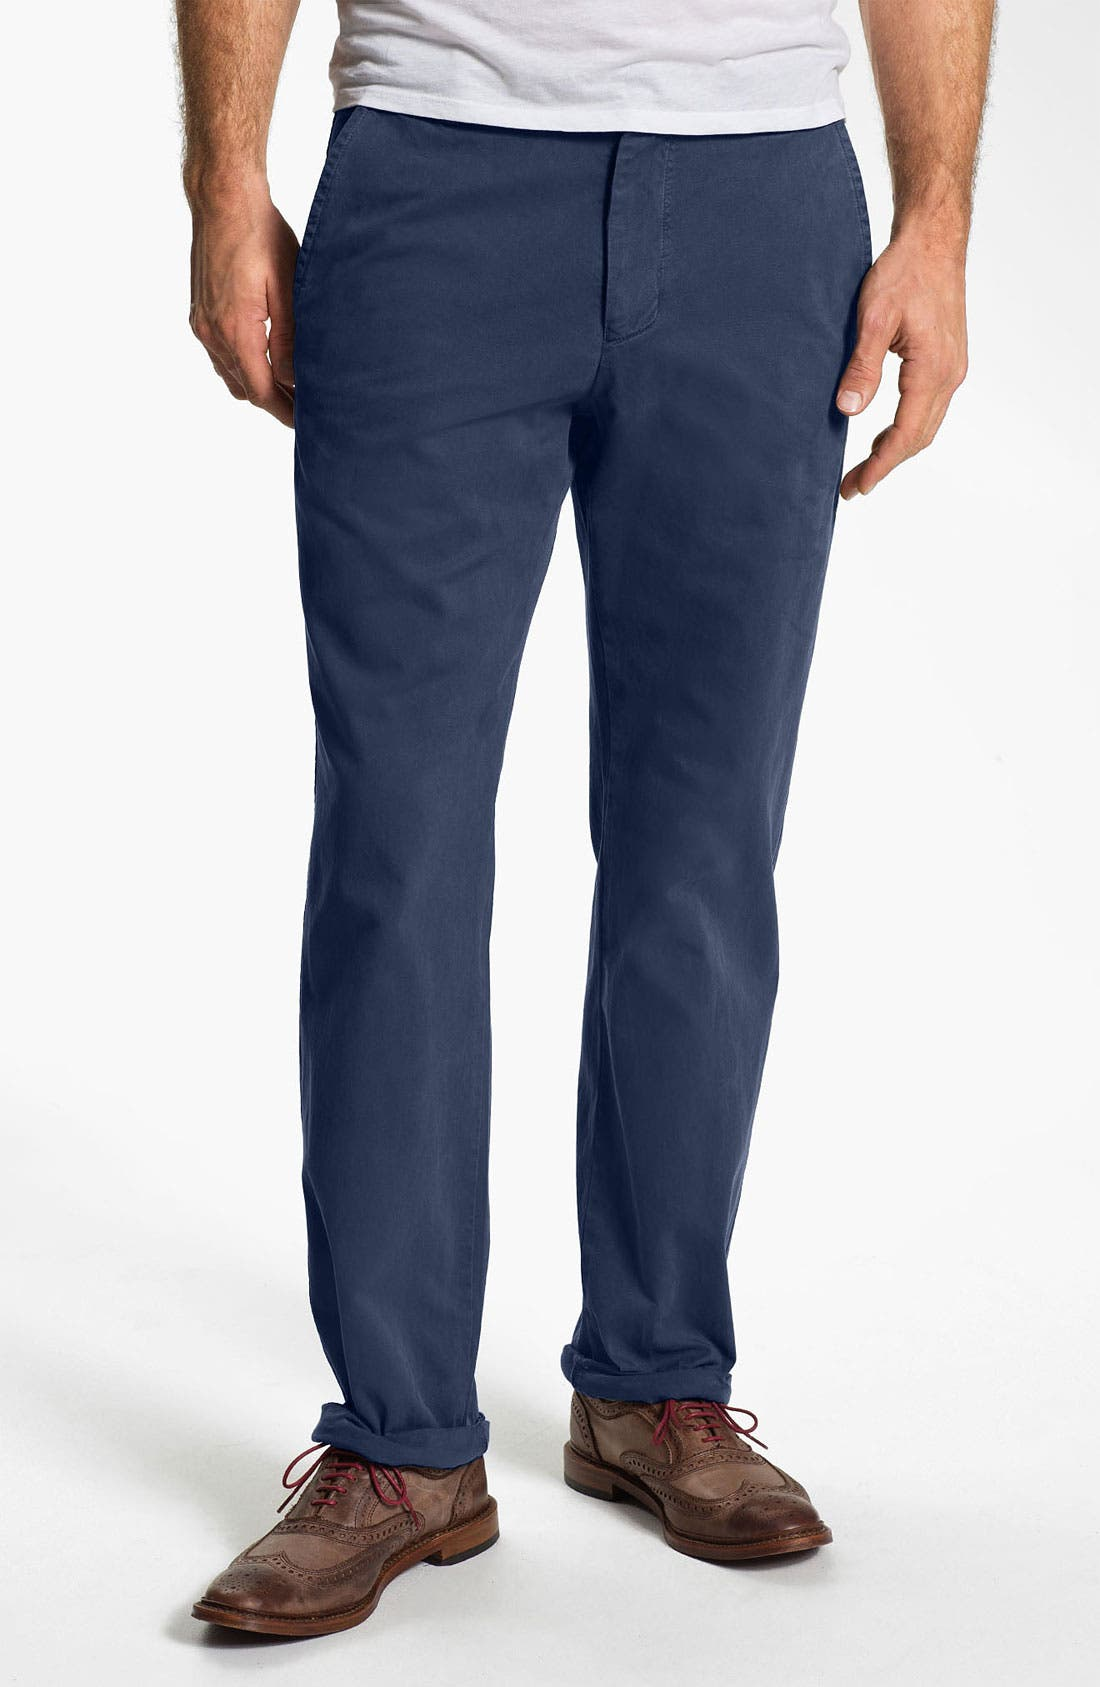 Alternate Image 1 Selected - Khaki Surplus Straight Leg Washed Cotton Twill Chinos (Online Only)